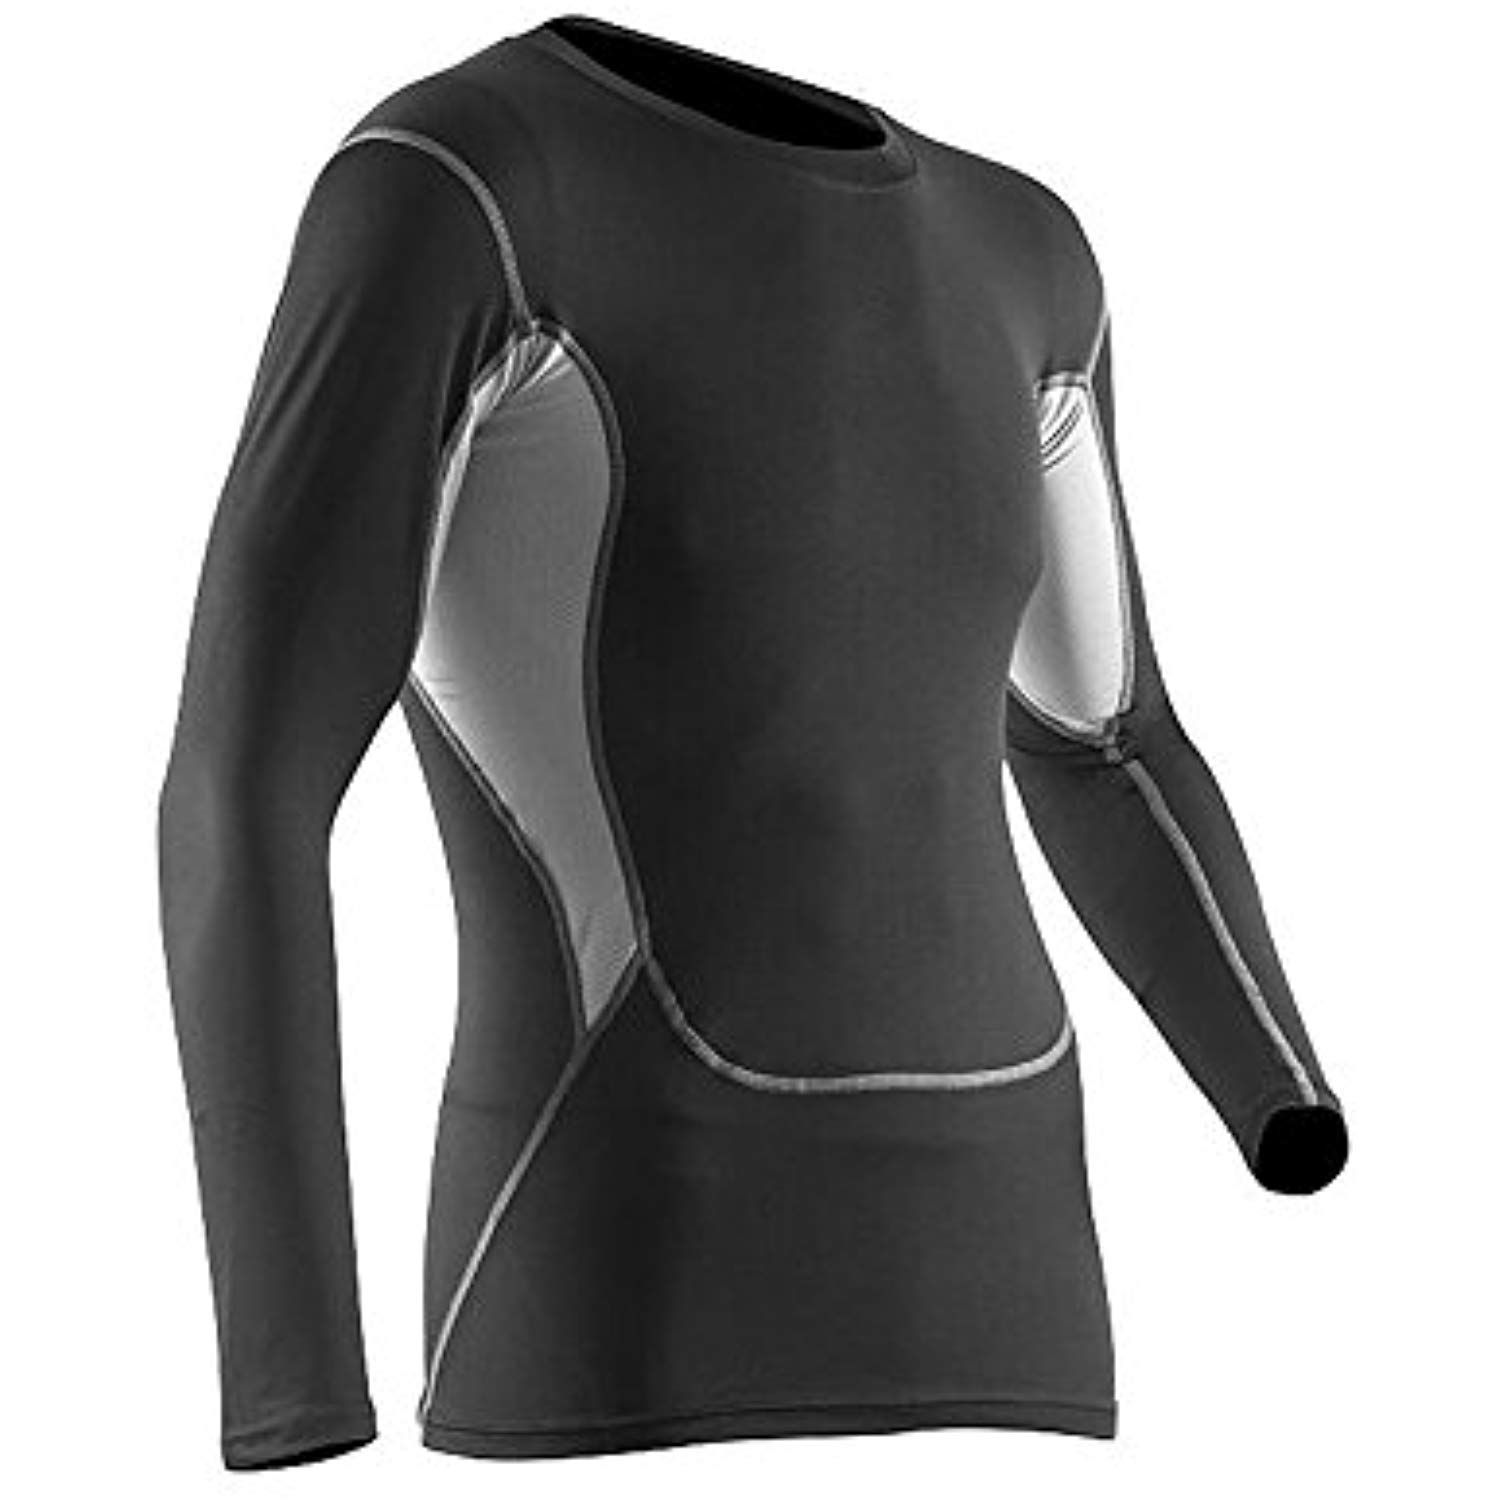 Mens COOVY Compression Wear Top Tight Short Sleeve T-Shirts Reflective pads